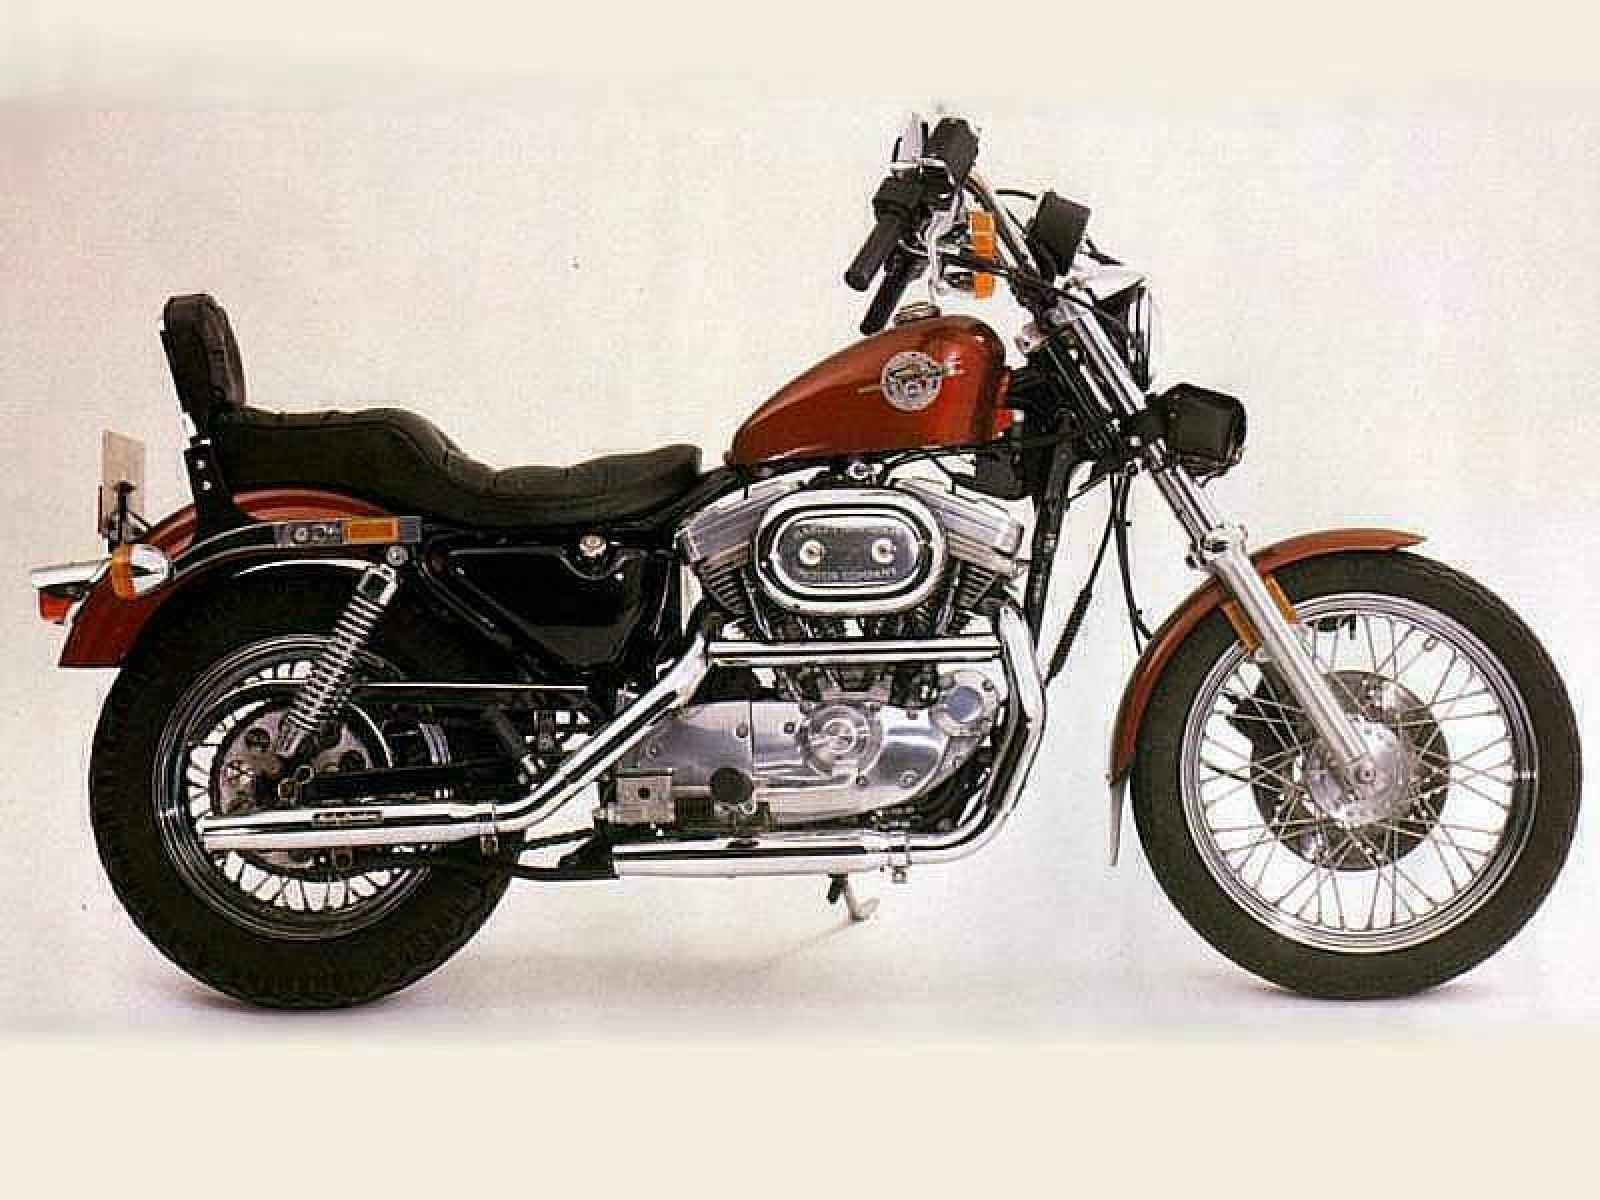 1990 harley davidson xlh sportster 883 standard moto. Black Bedroom Furniture Sets. Home Design Ideas